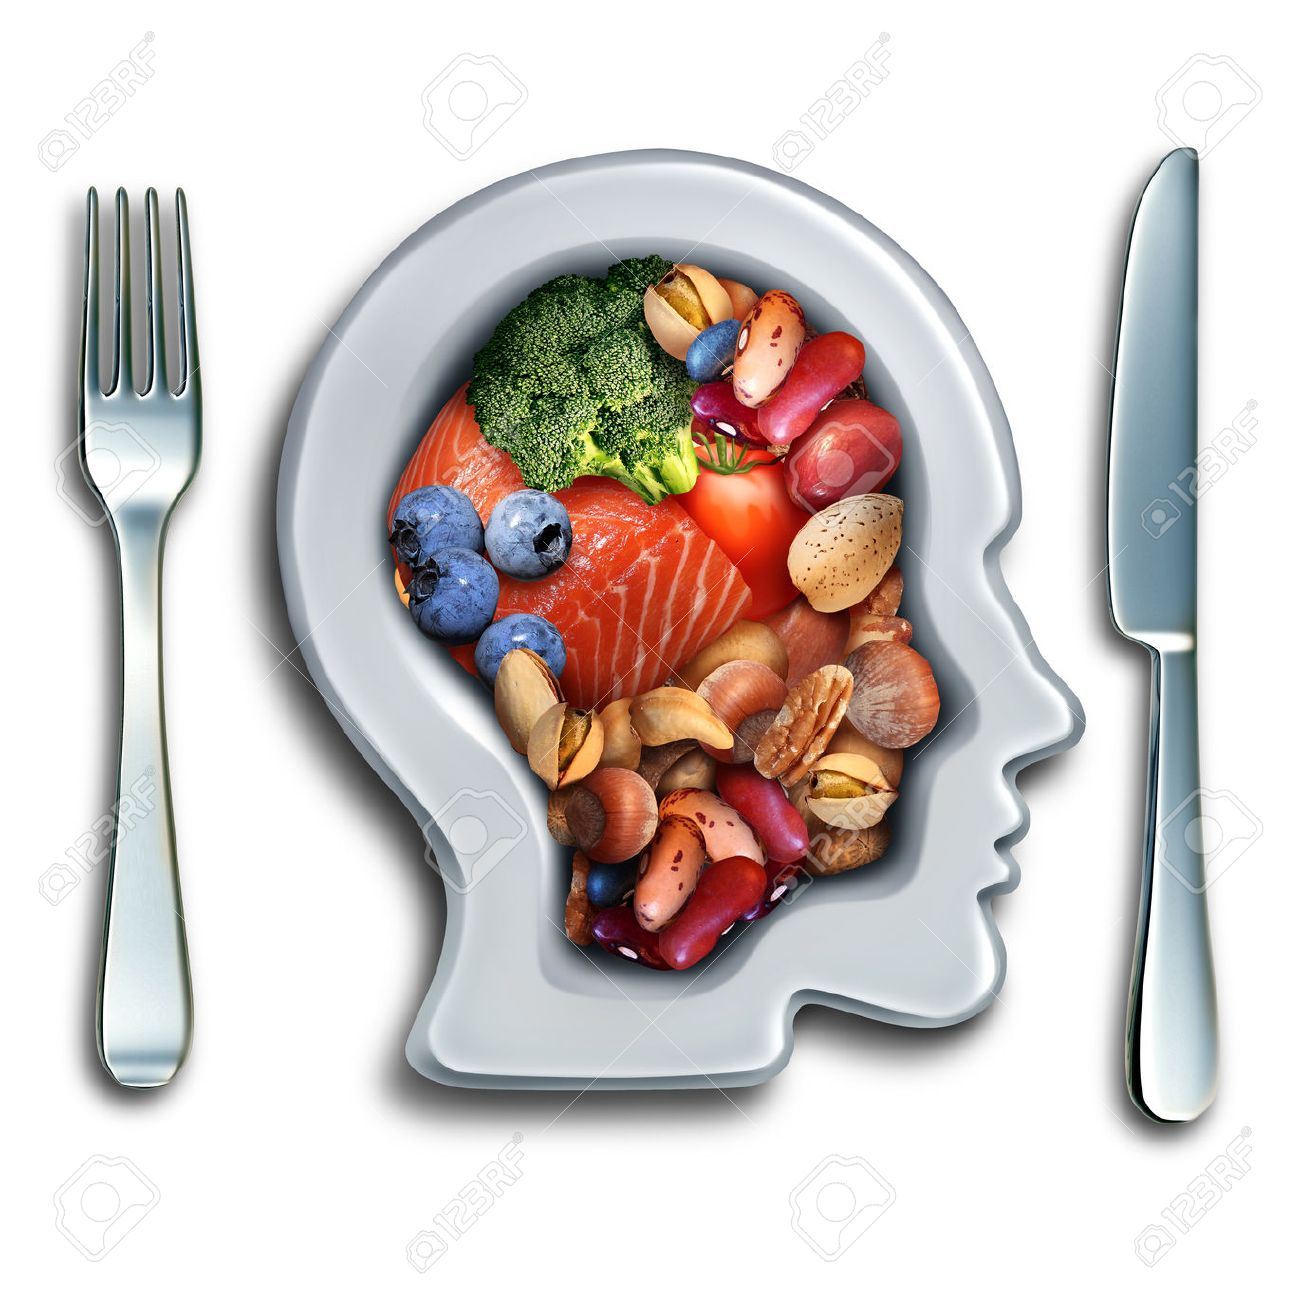 Brain food to boost brainpower nutrition concept as a group of nutritious nuts fish vegetables and berries rich in omega-3 fatty acids with vitamins and minerals for mind health with 3D illustration elements. Standard-Bild - 63825904